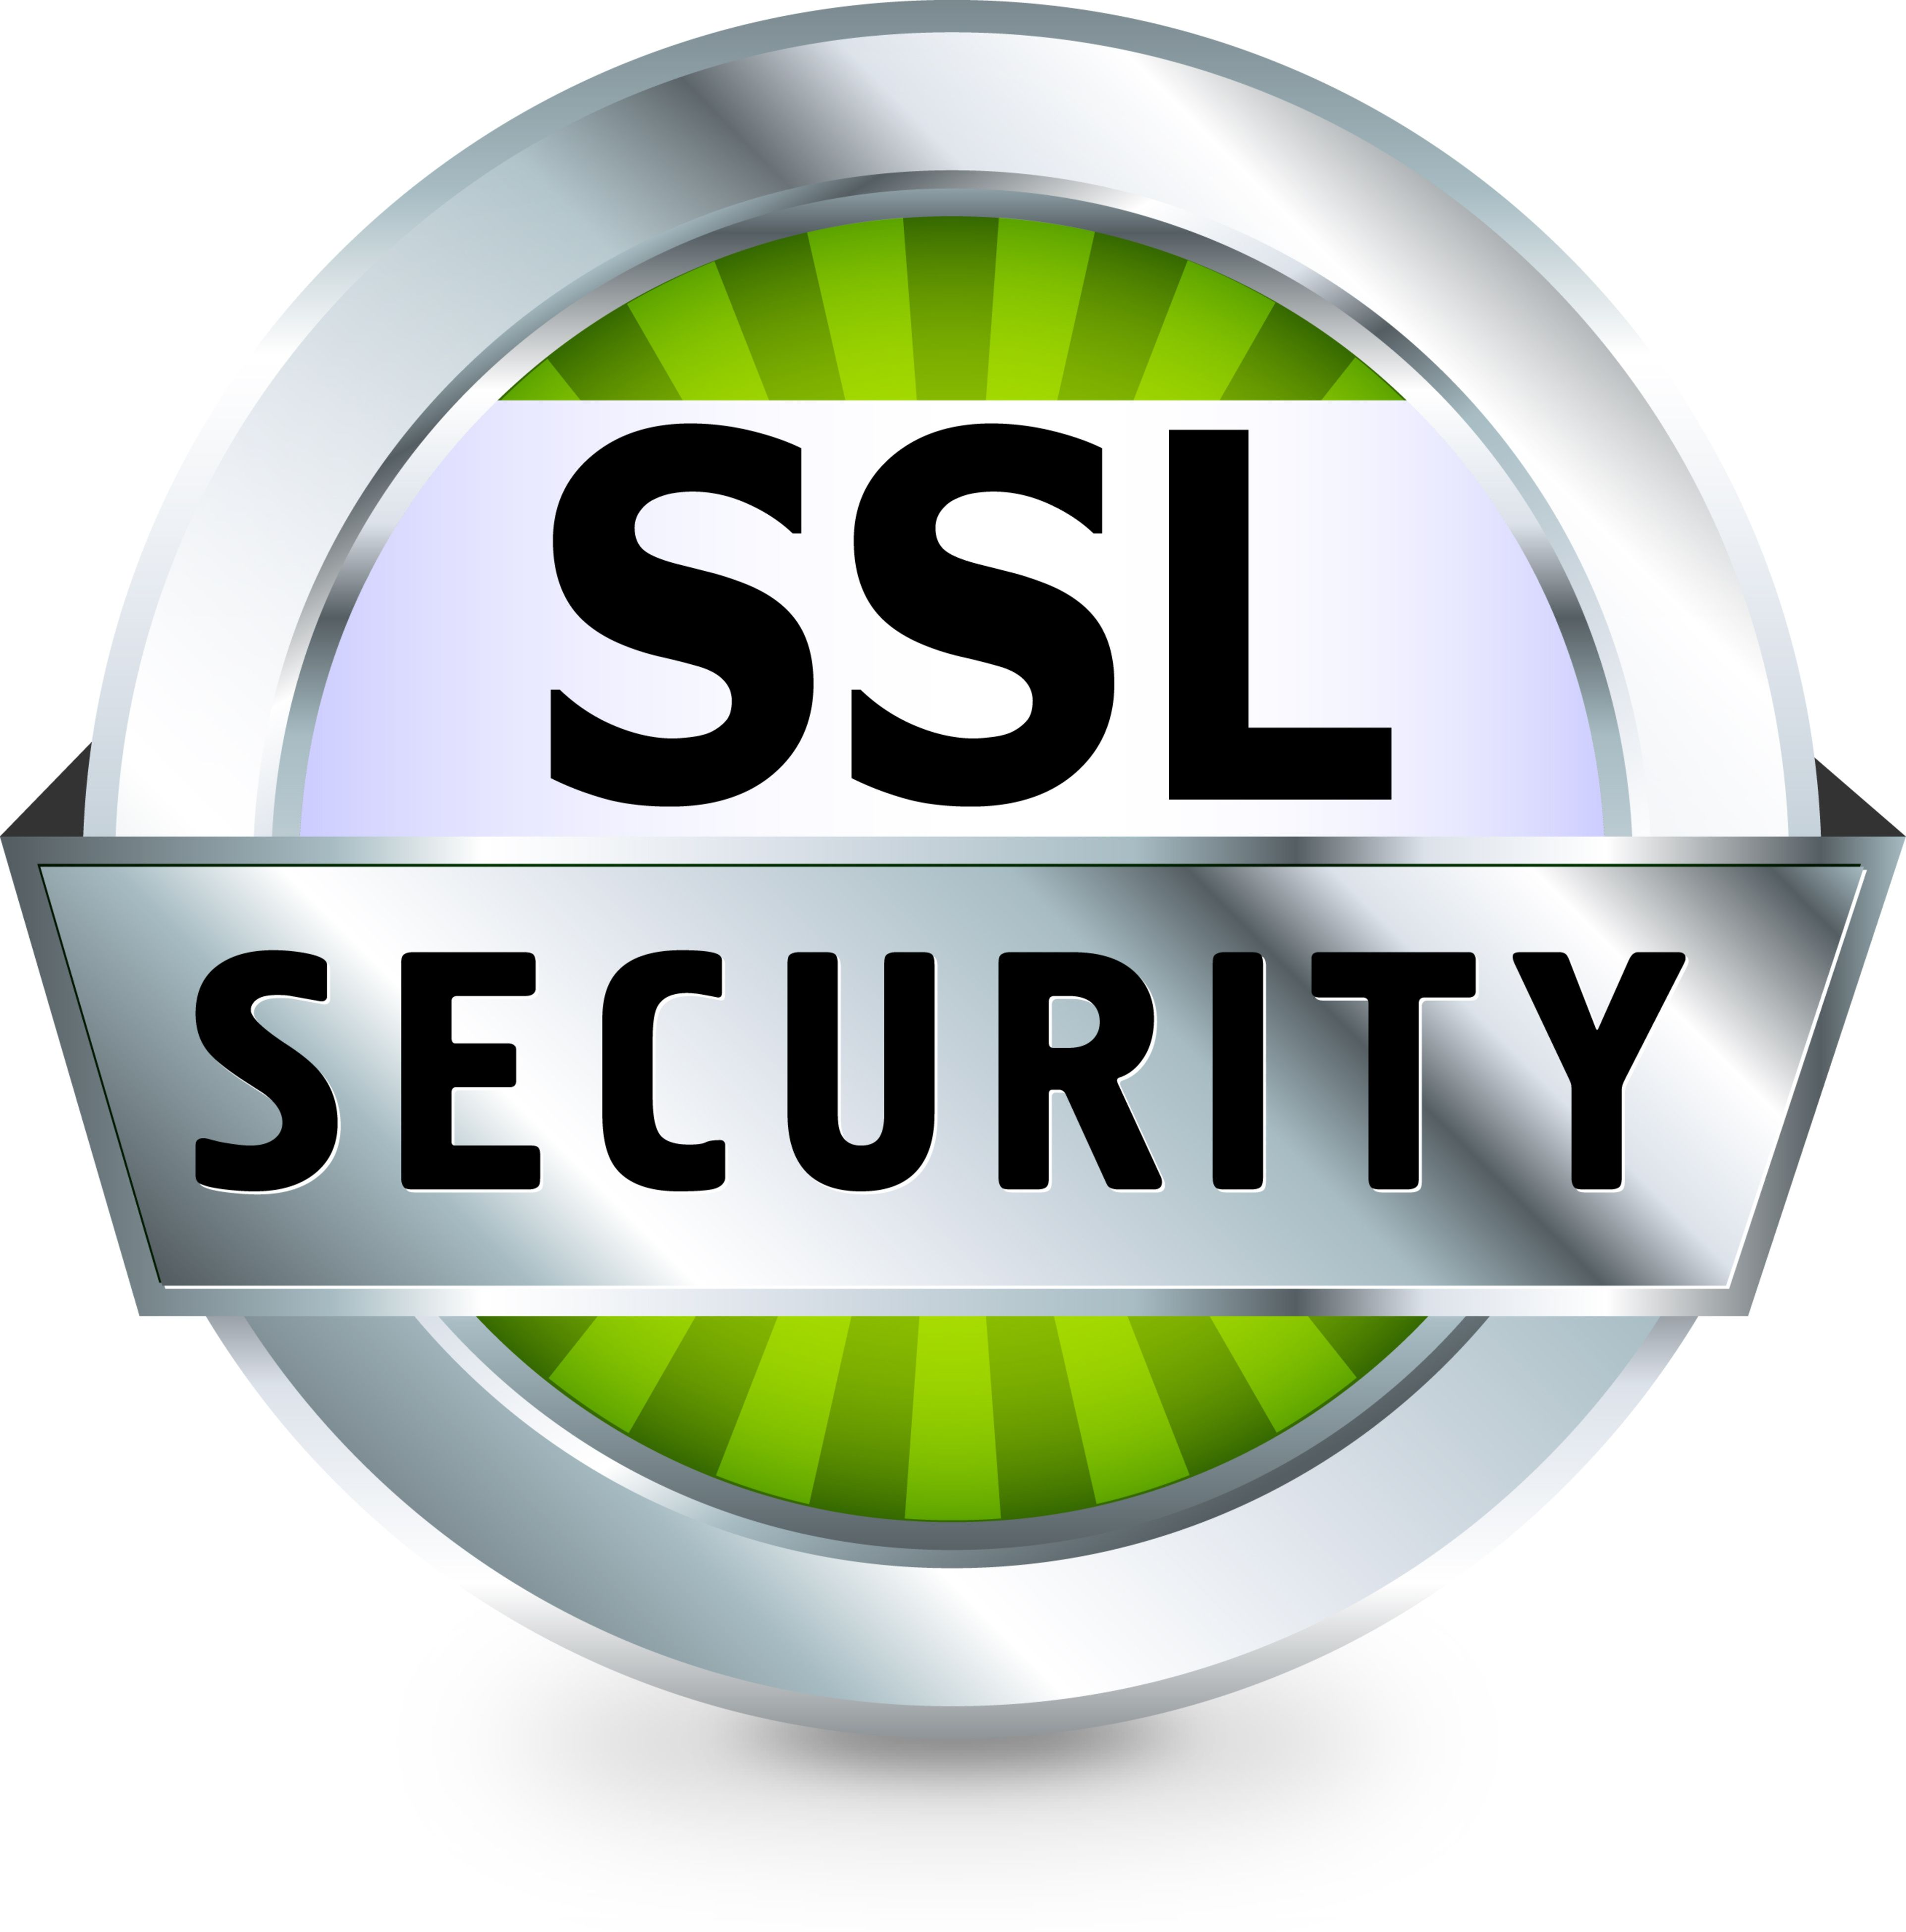 Secure socket layer ssl is a safety protocol that ensures the godaddy ssl certificate benefits for online business 1betcityfo Images